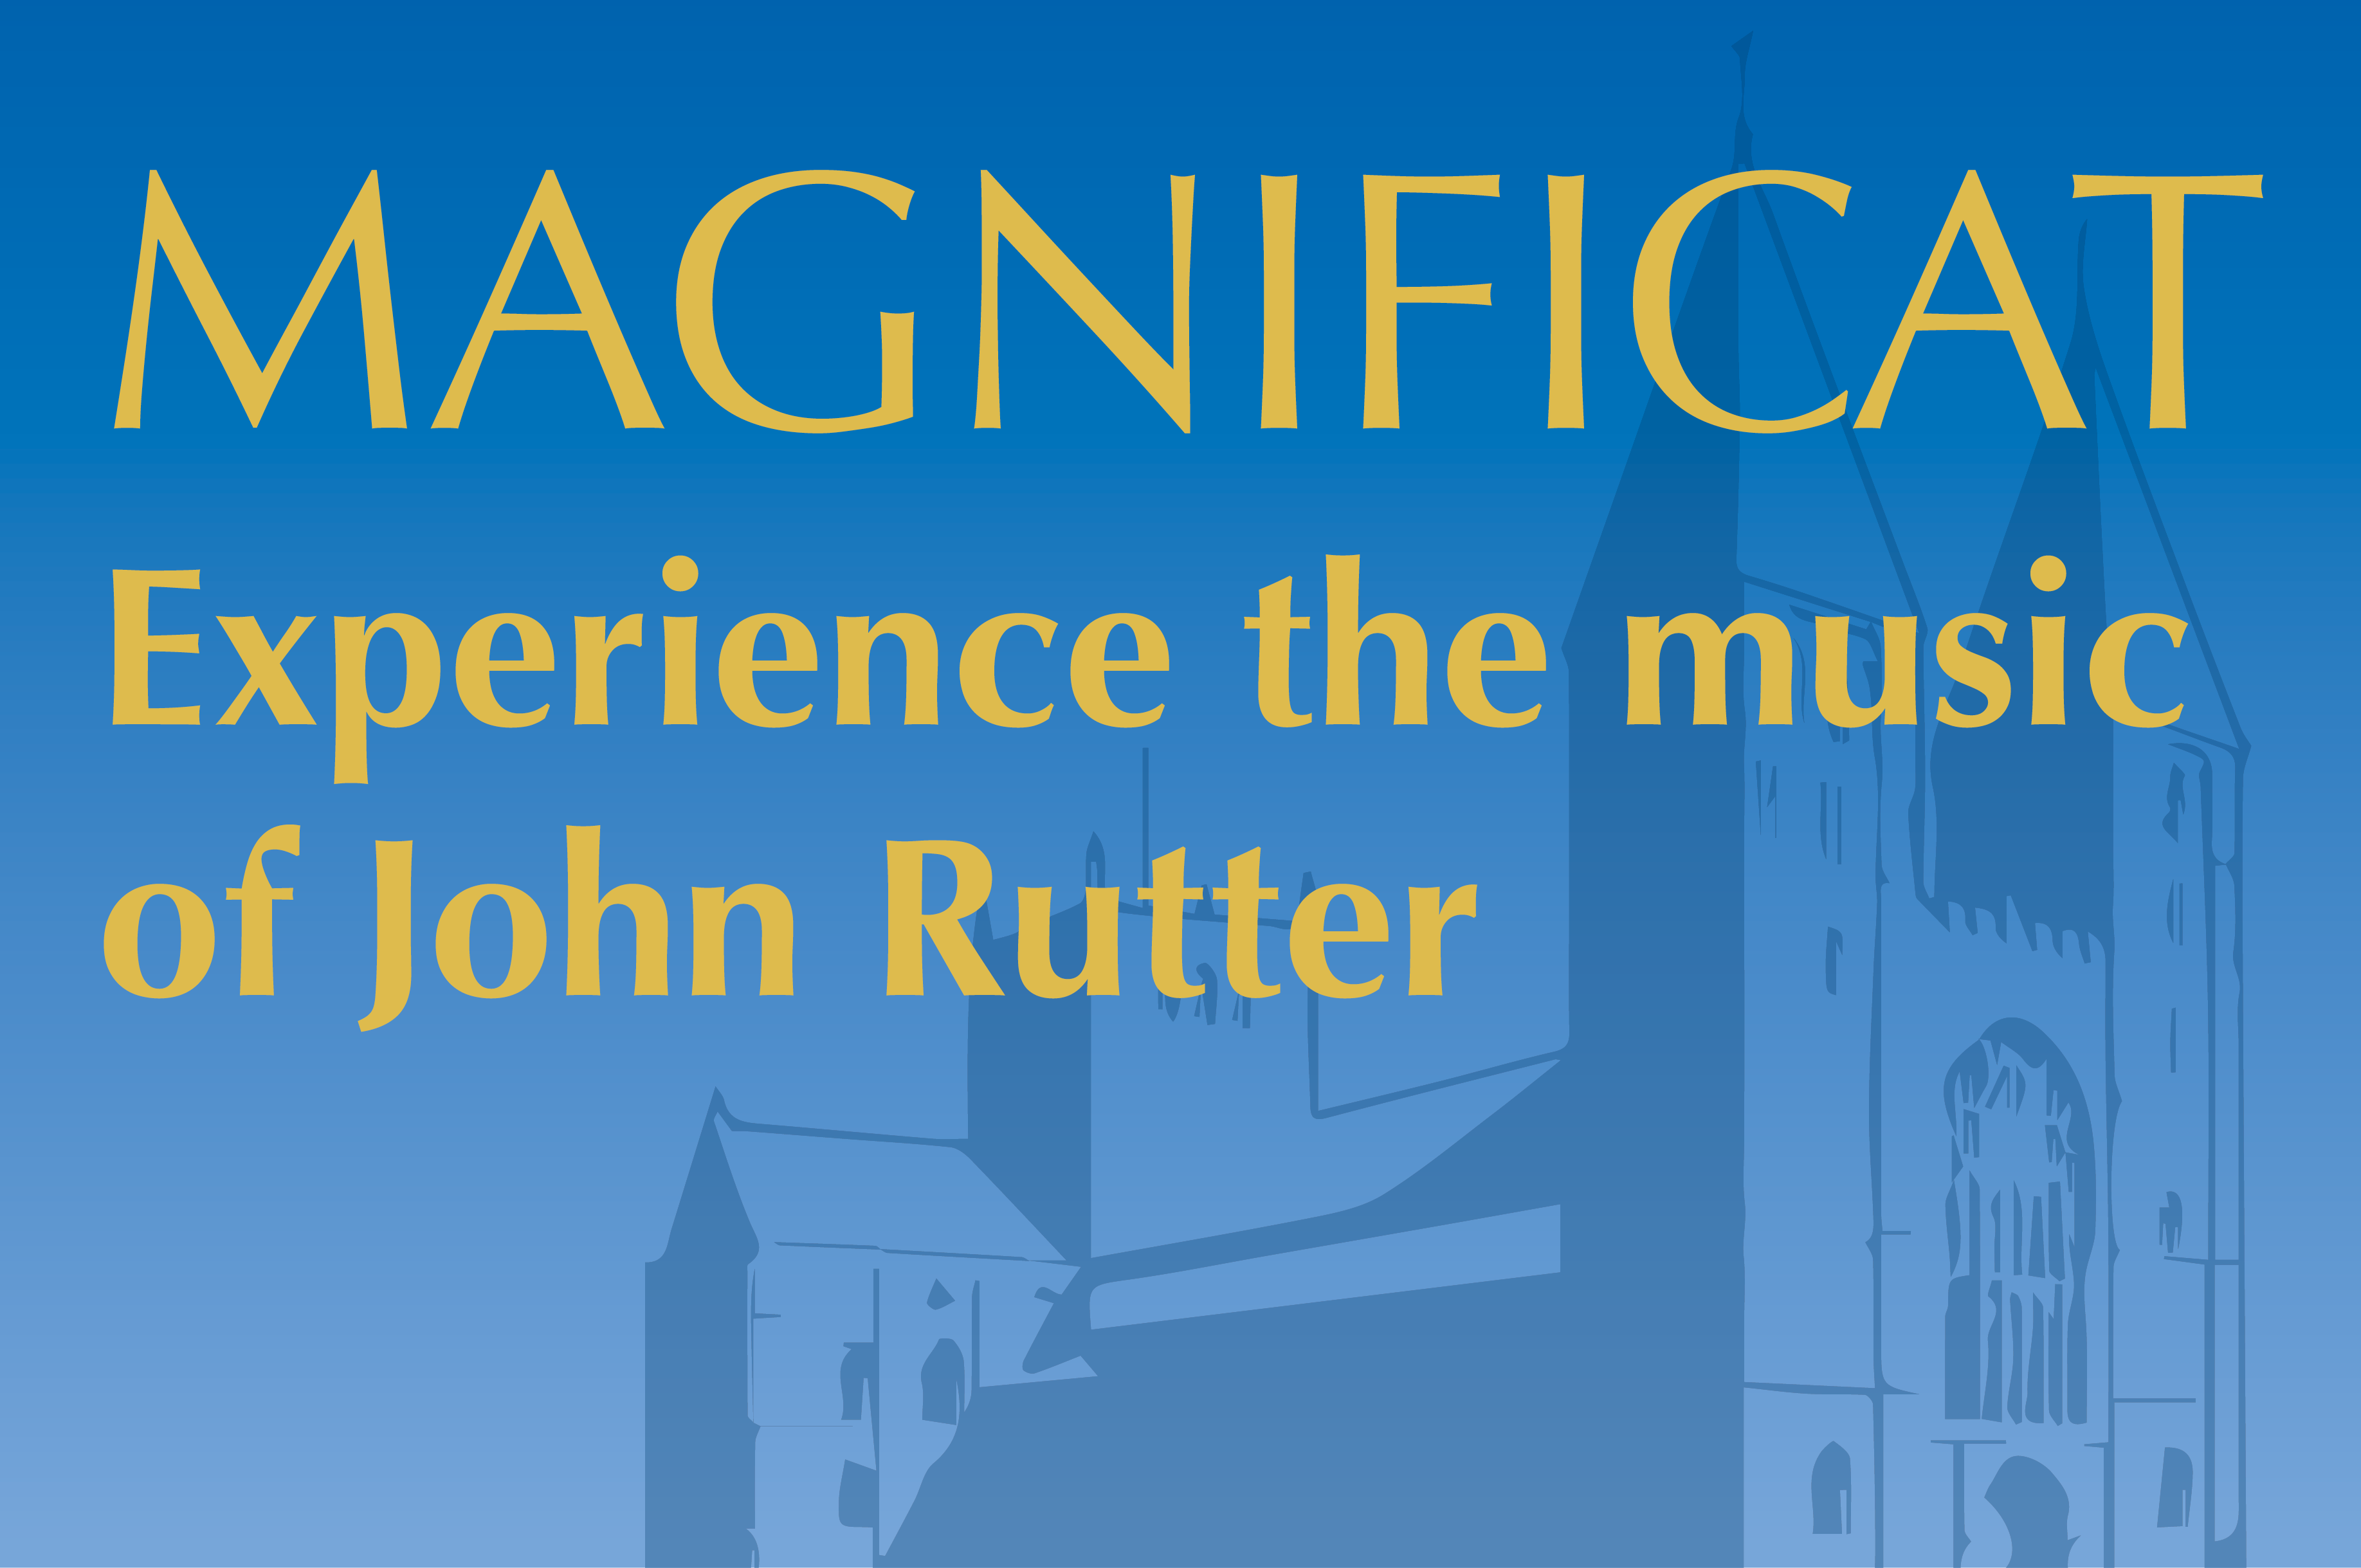 Magnificat: Experience the music of John Rutter